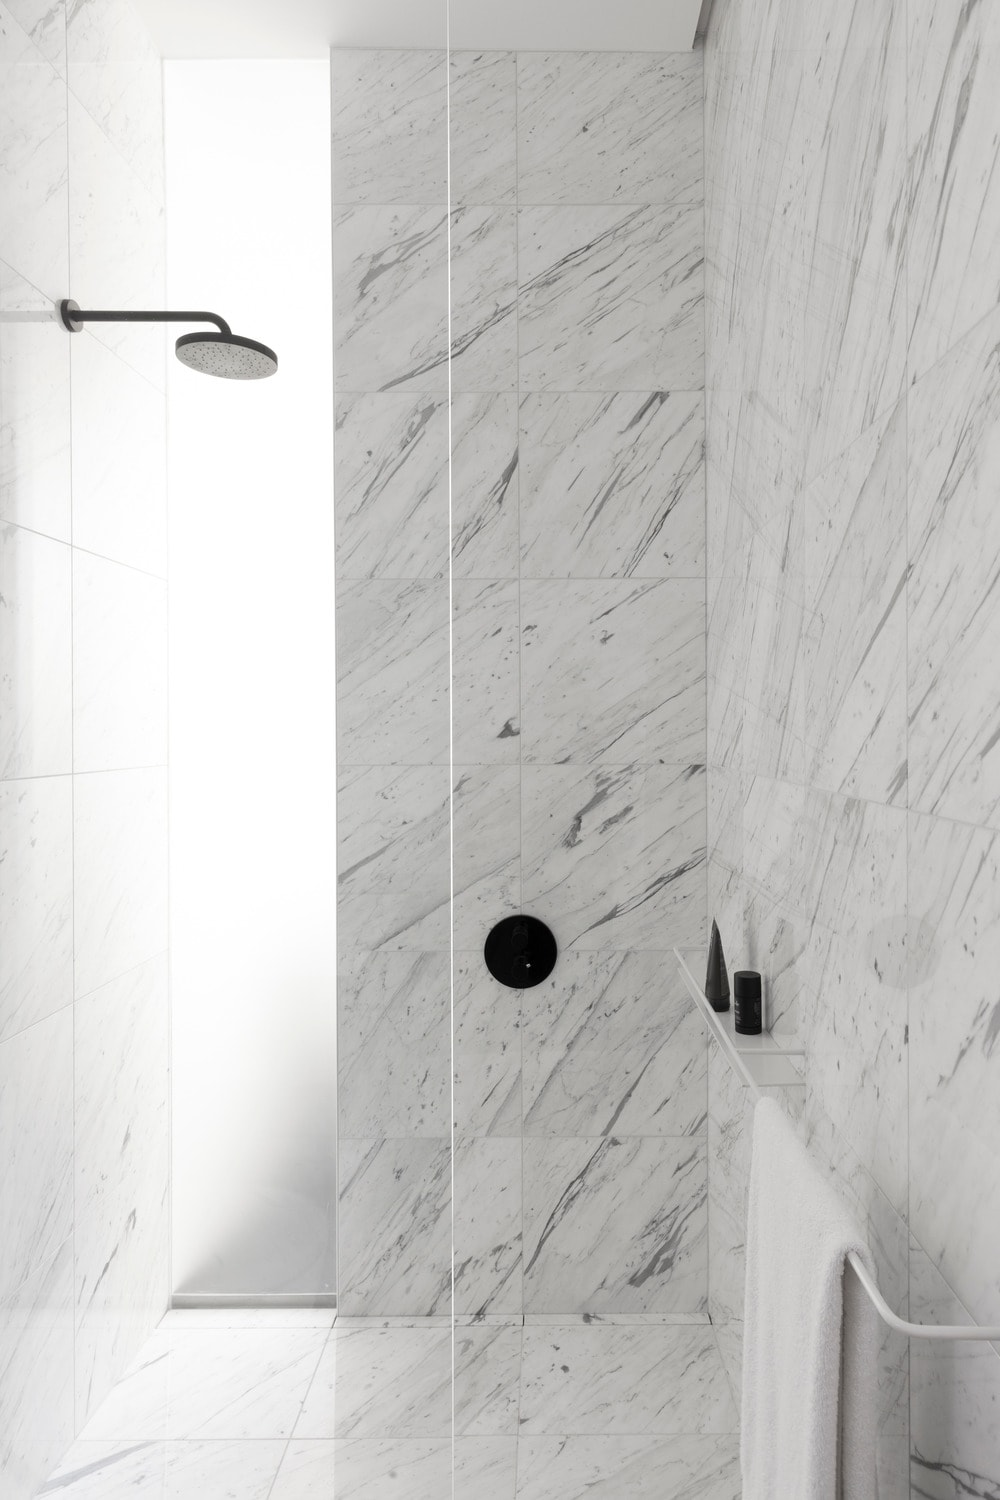 This is a close look at the shower area that has frosted glass and white marble walls that makes the black fixtures stand out.